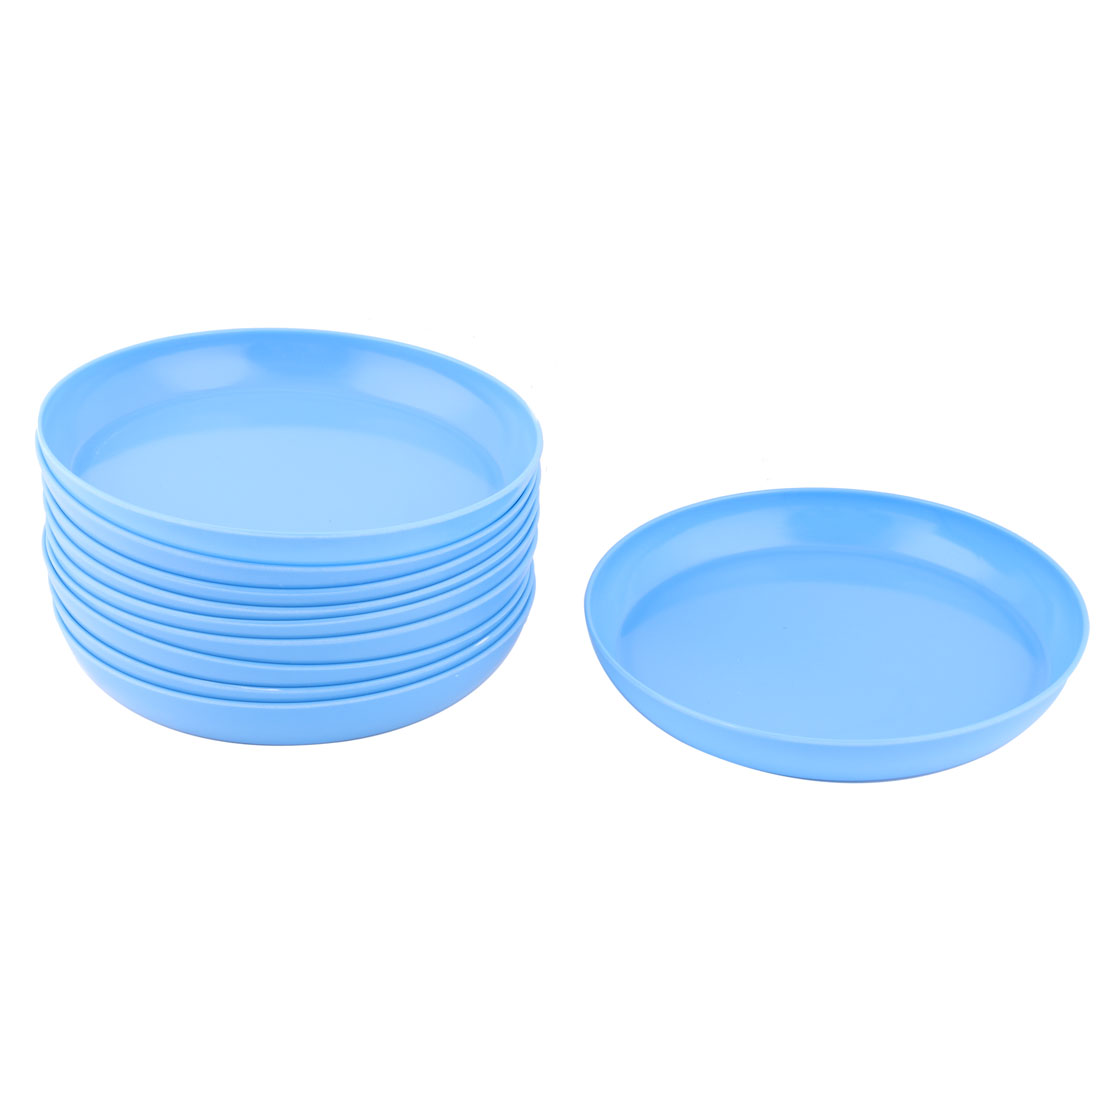 Household Yard Garden Melamine Round Flower Pot Holder Tray Blue 8.6 Inch Dia 10 Pcs